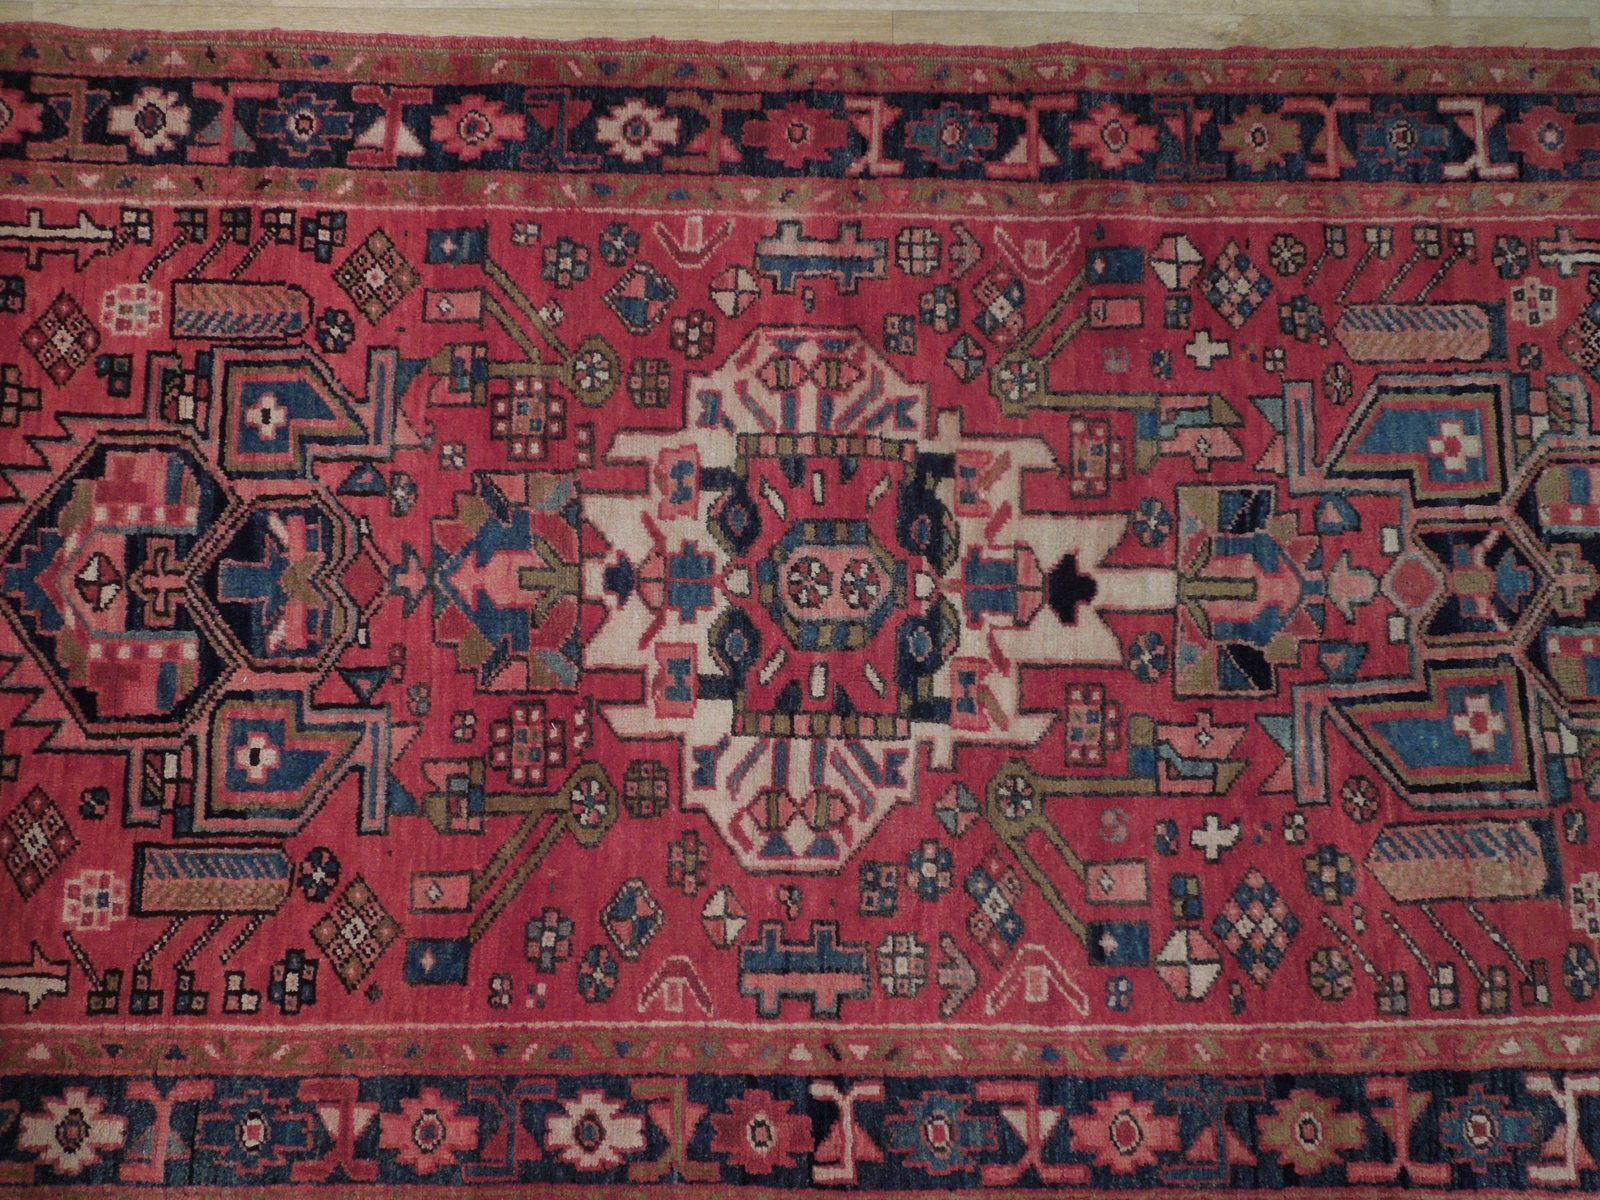 Tribal Inspired Olde Runner Persian Hand-Knotted 2' x 11' Red Heriz Wool Rug image 6